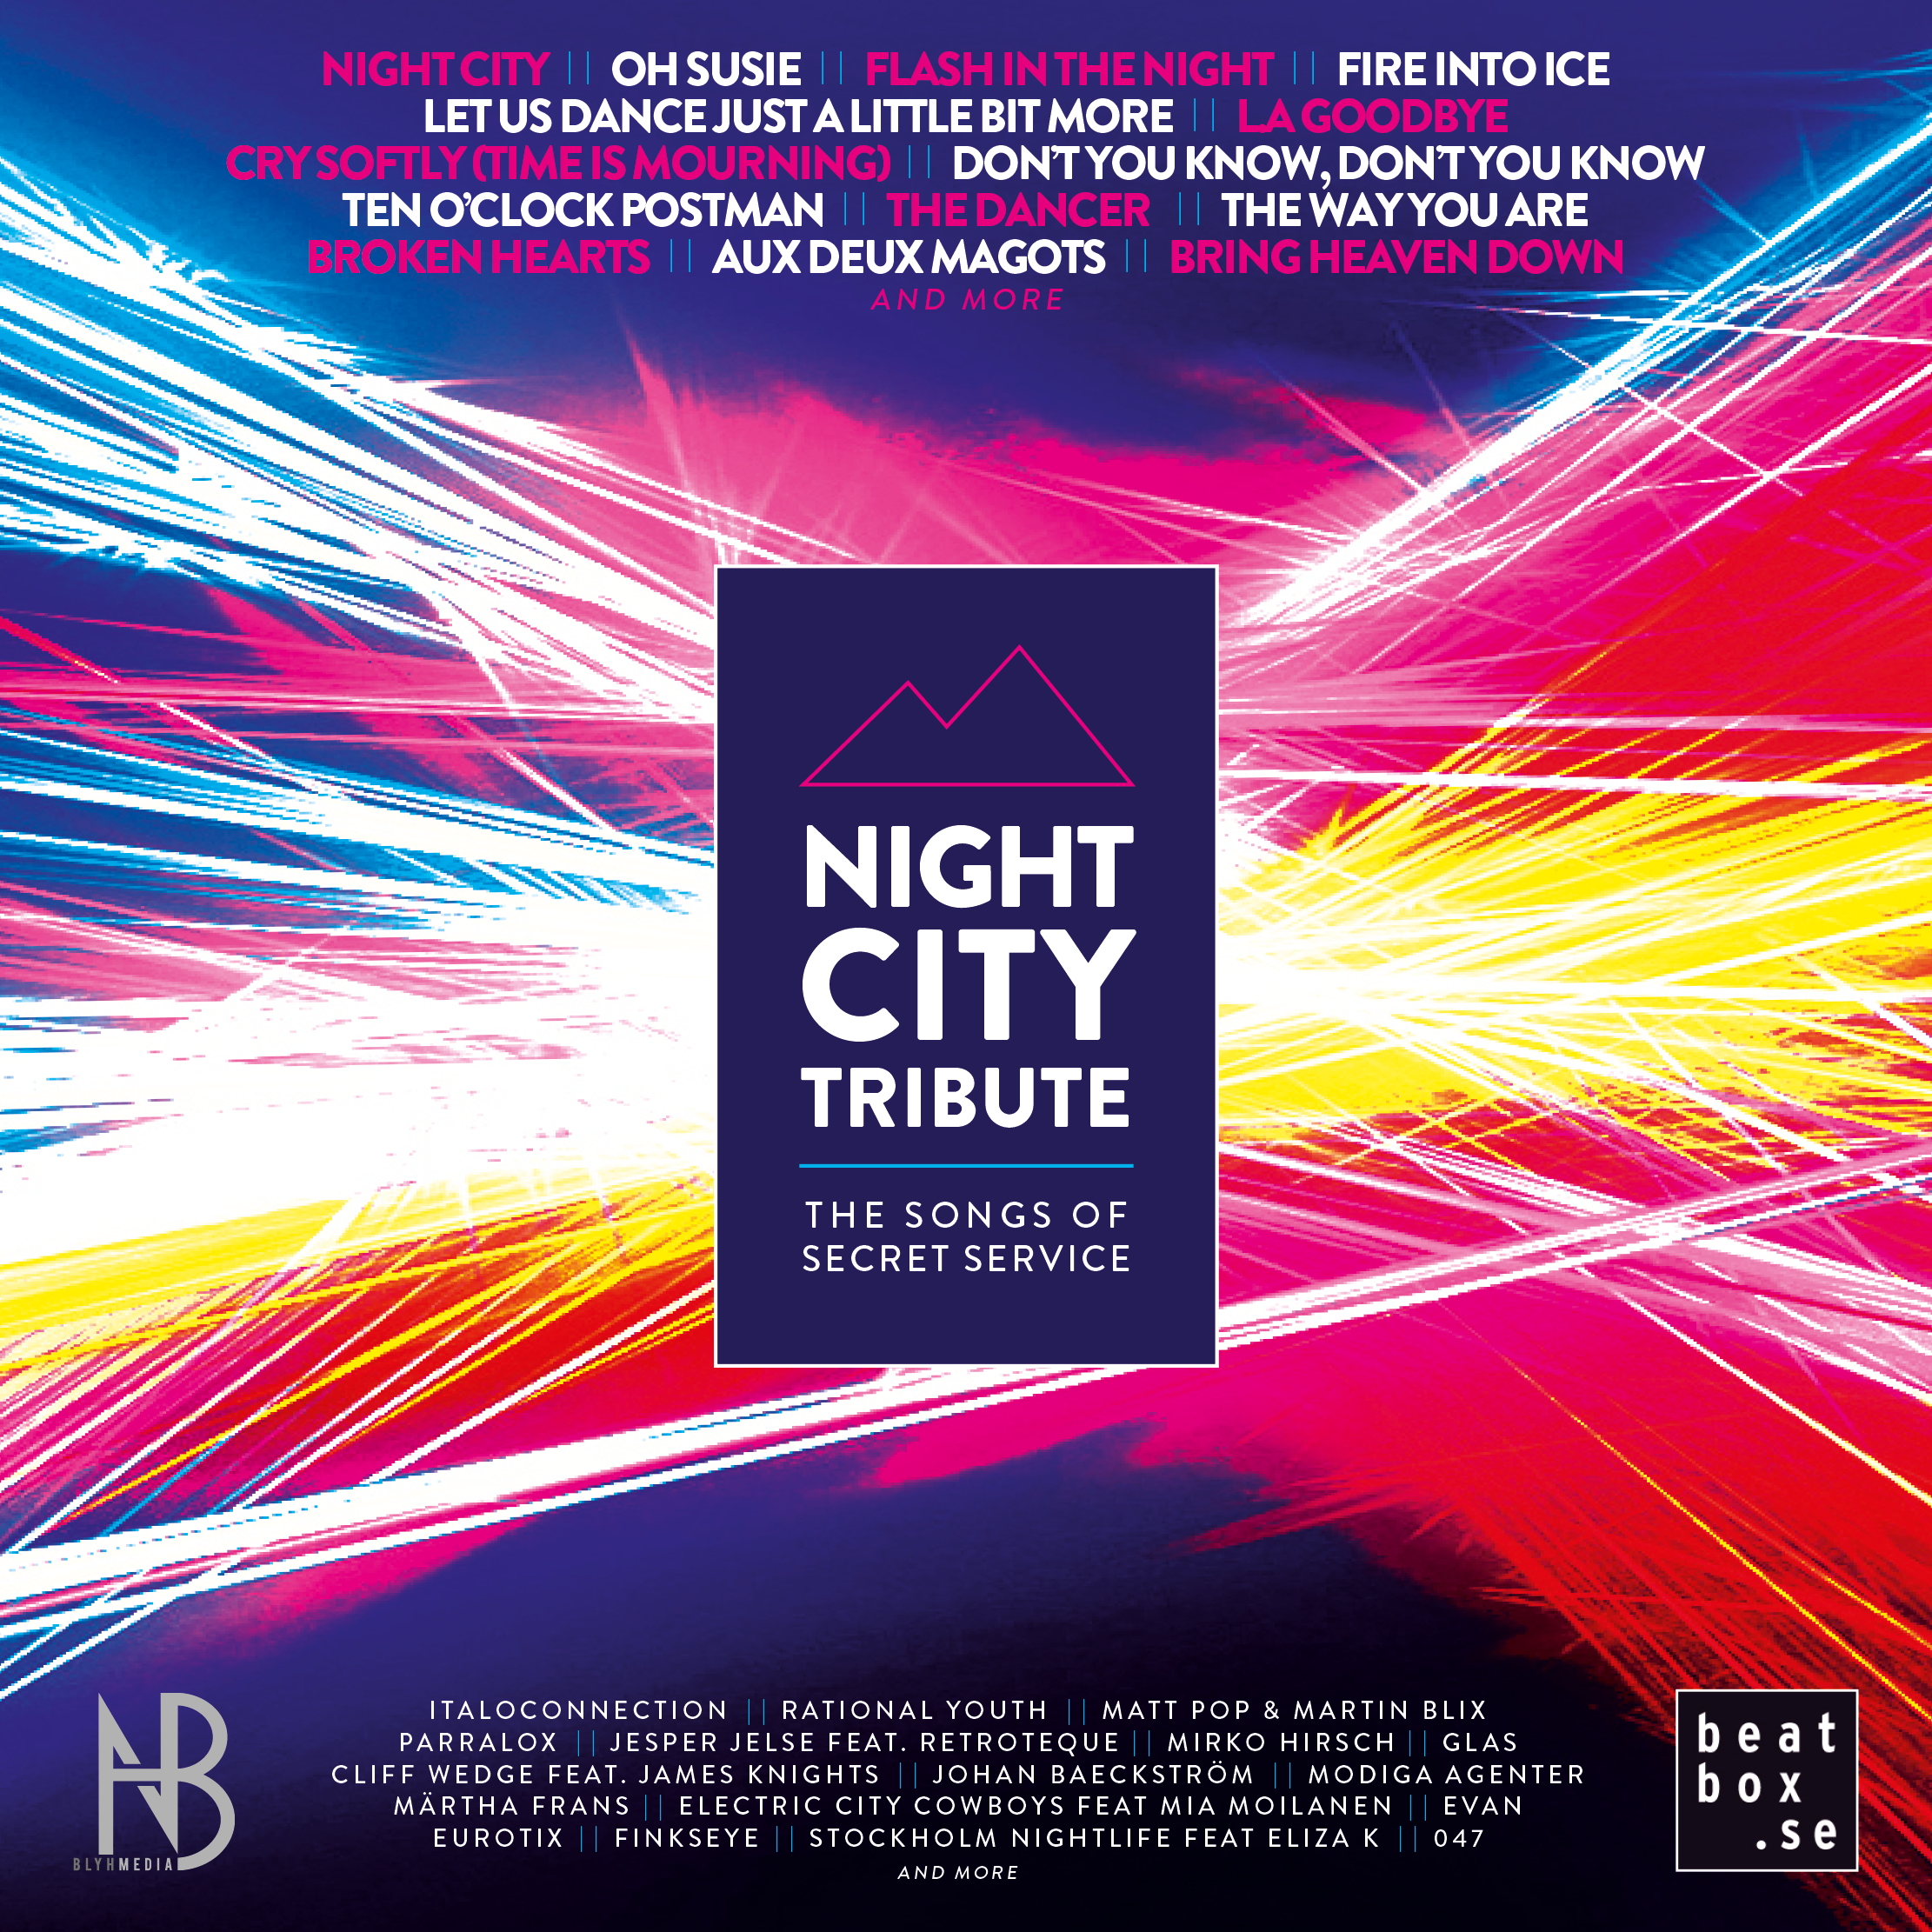 NightCityTribute - The Songs Of Secret Service - digicover.png